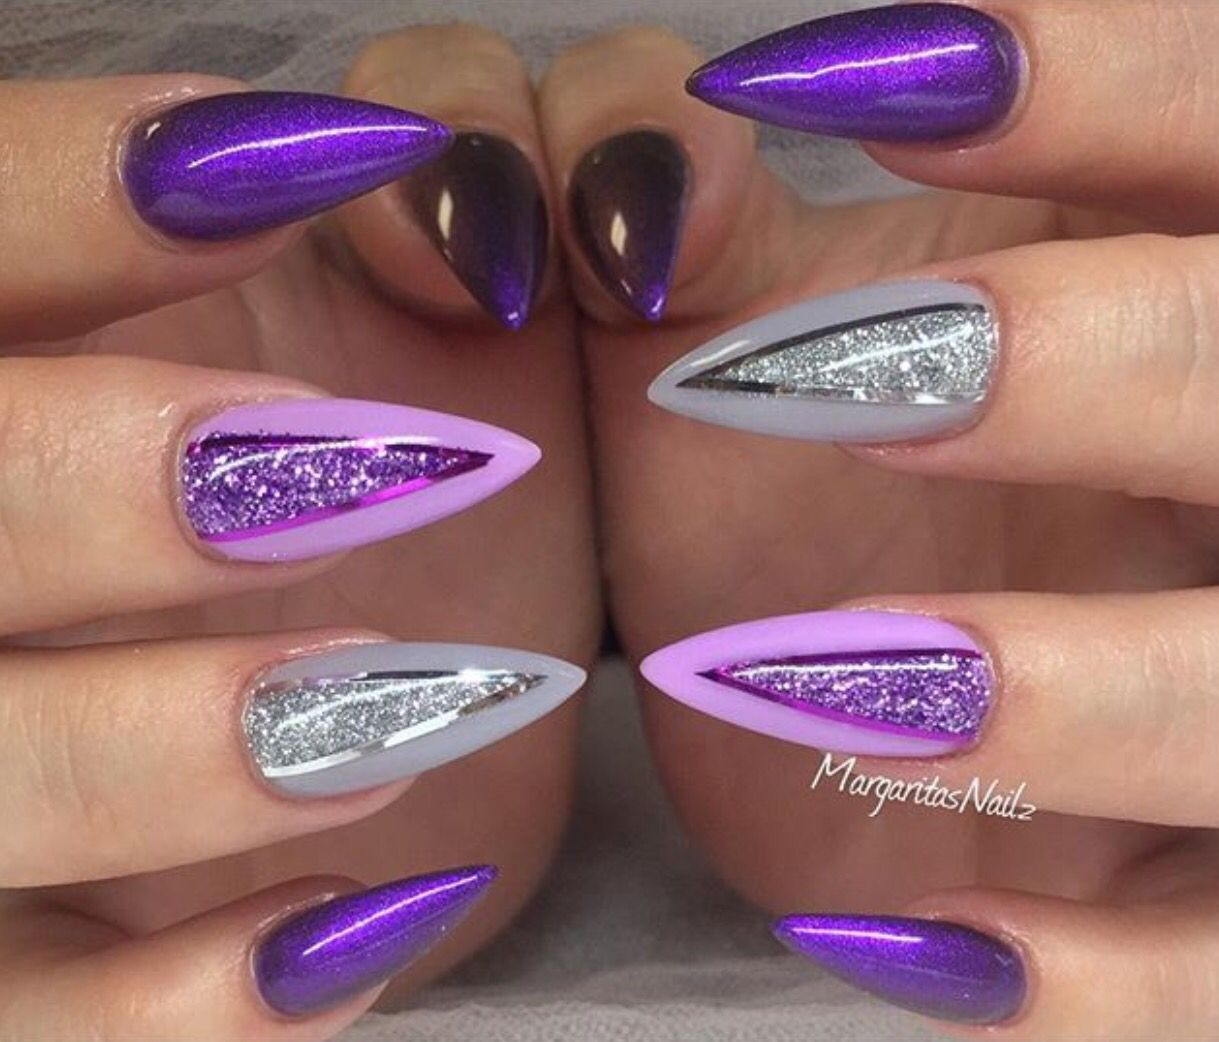 Pin by ✨Empress Esh✨ on ~PRETTY FINGERS & PRETTY TOES~ | Pinterest ...